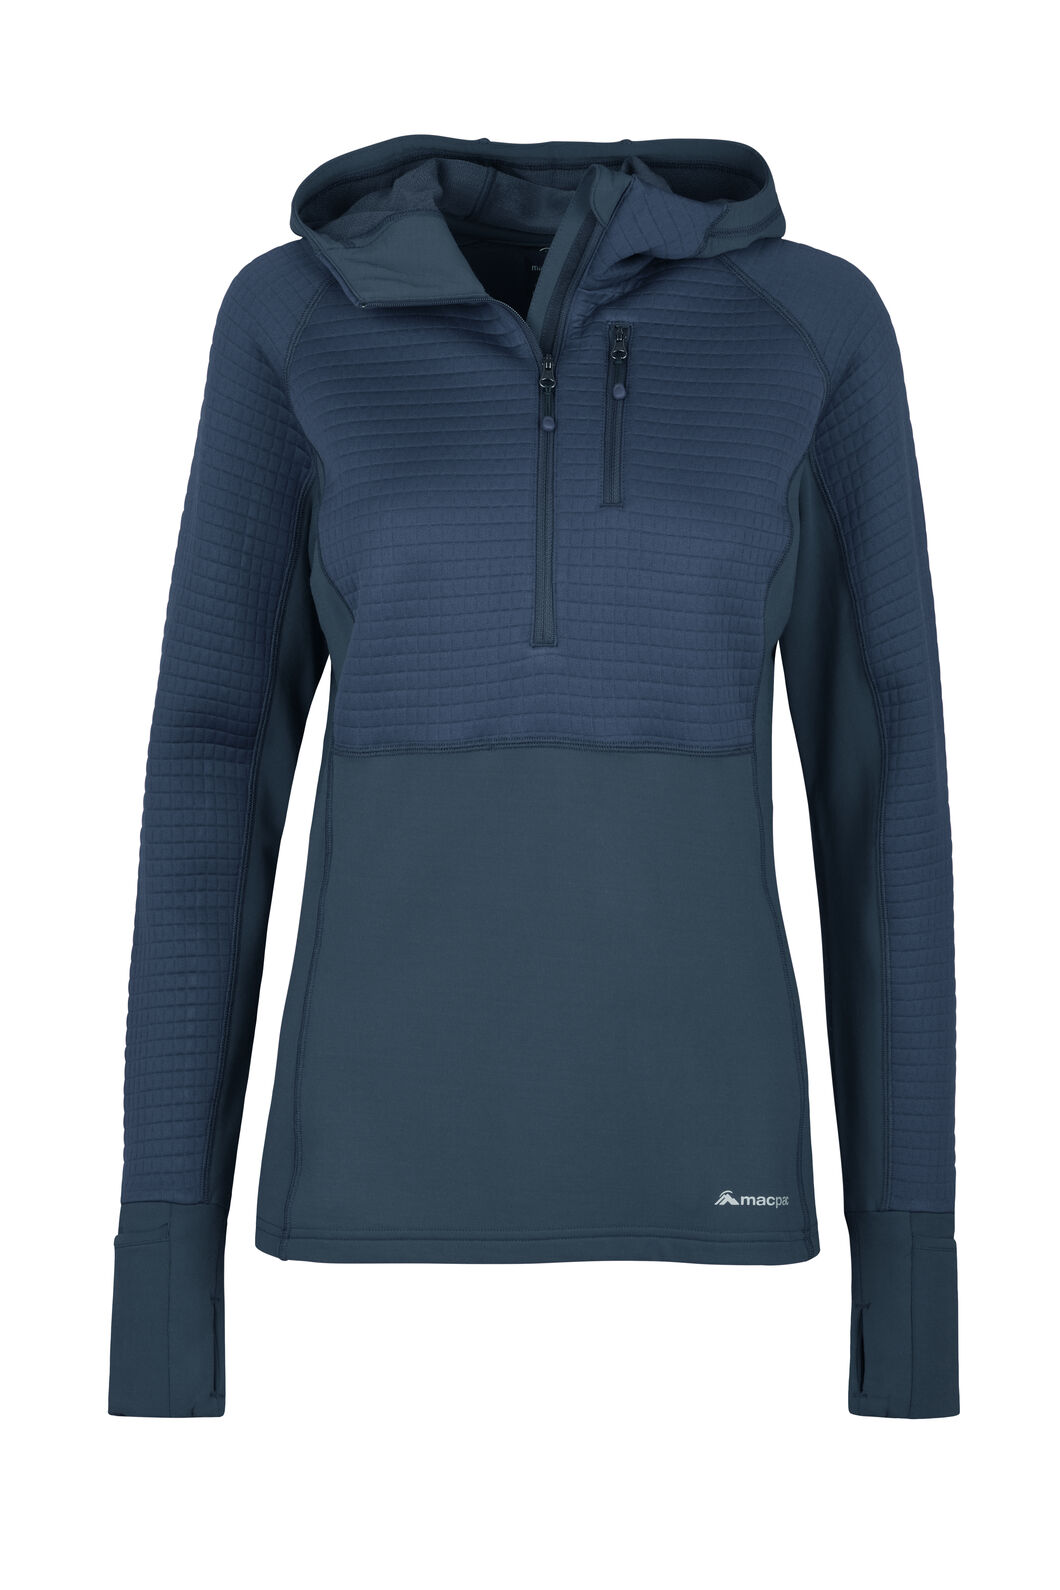 Macpac Delta Merino Blend Hooded Pullover — Women's, Medieval Blue, hi-res